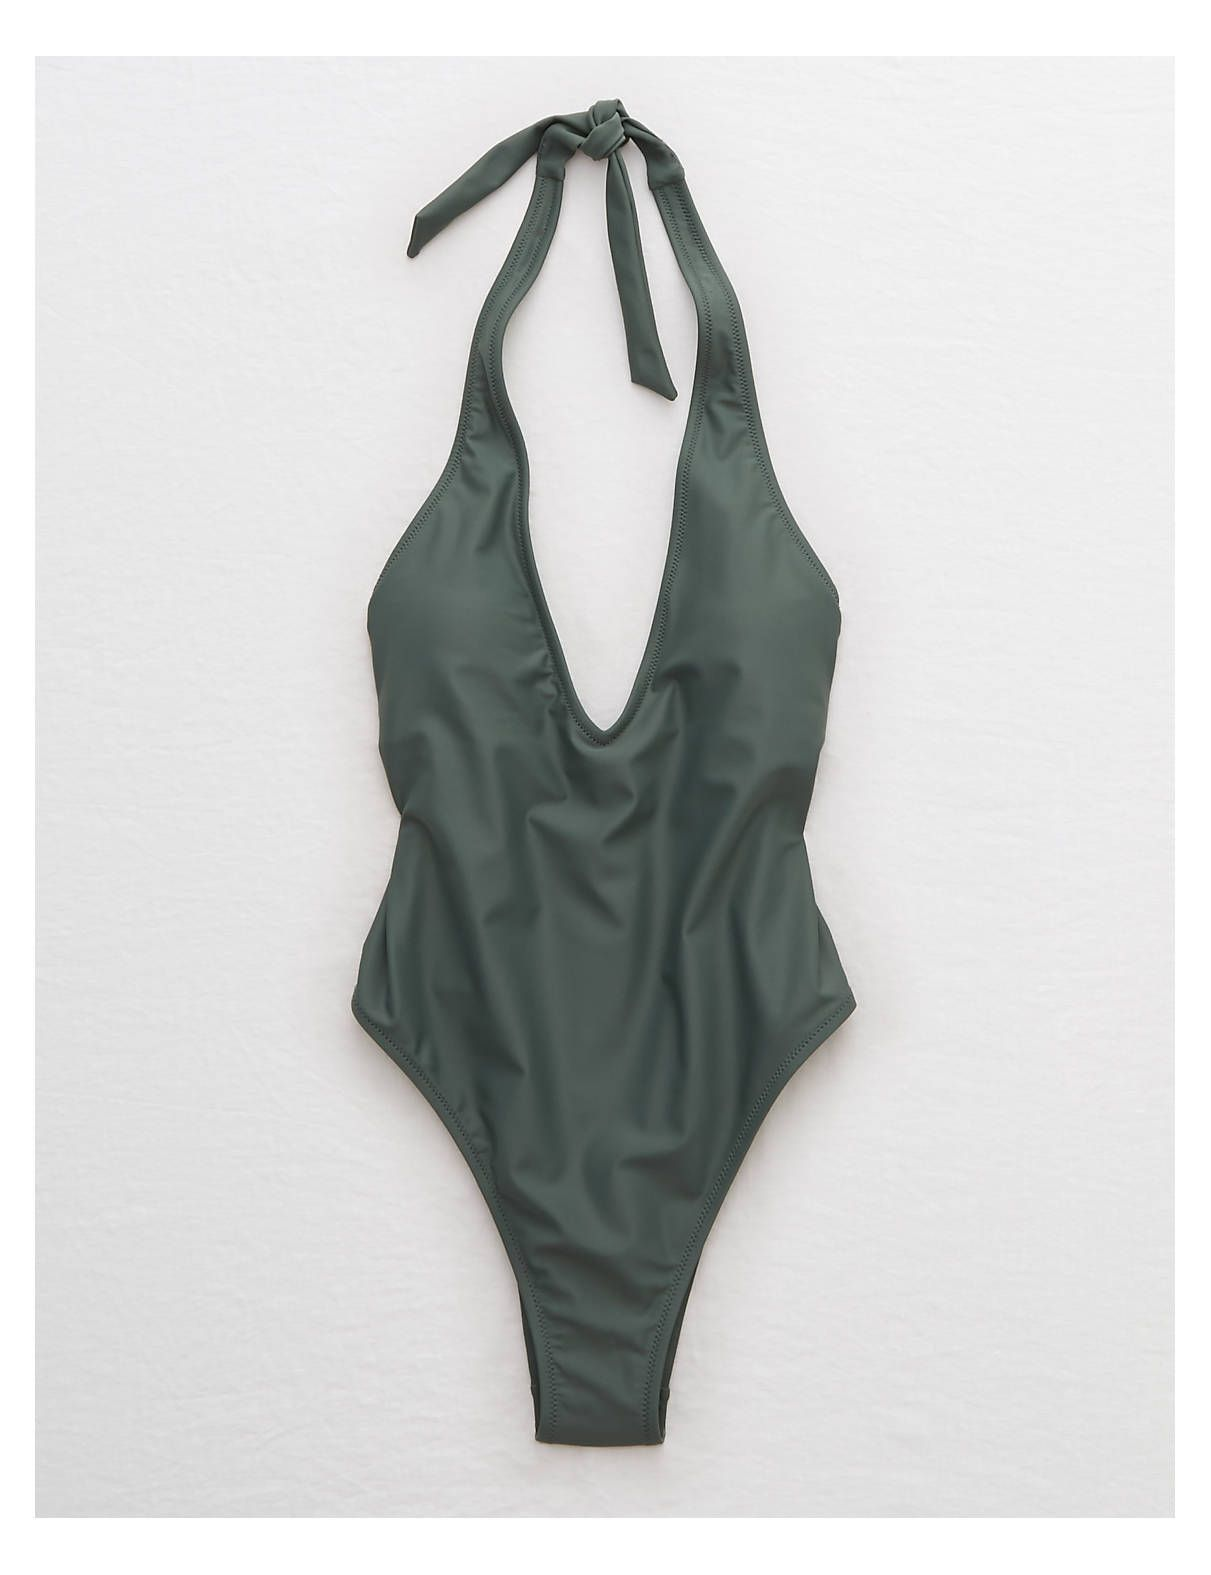 db8d9a005e8ef Aerie Super Plunge One Piece Swimsuit , Green | Aerie for American Eagle